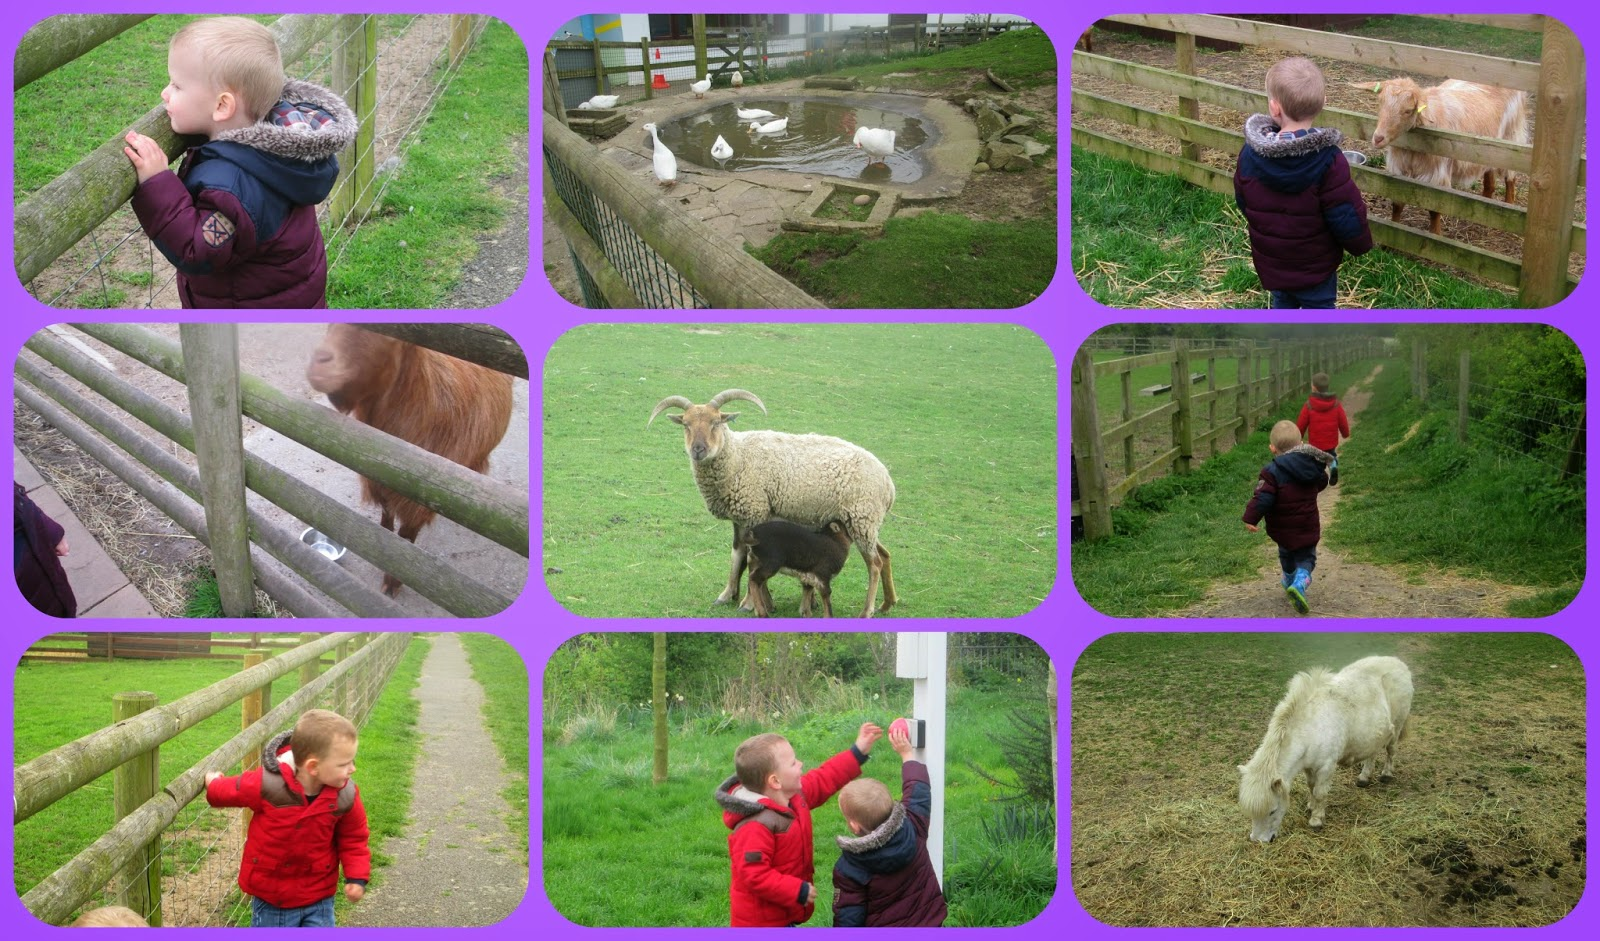 A city farm Gorse hill family farm Leicester